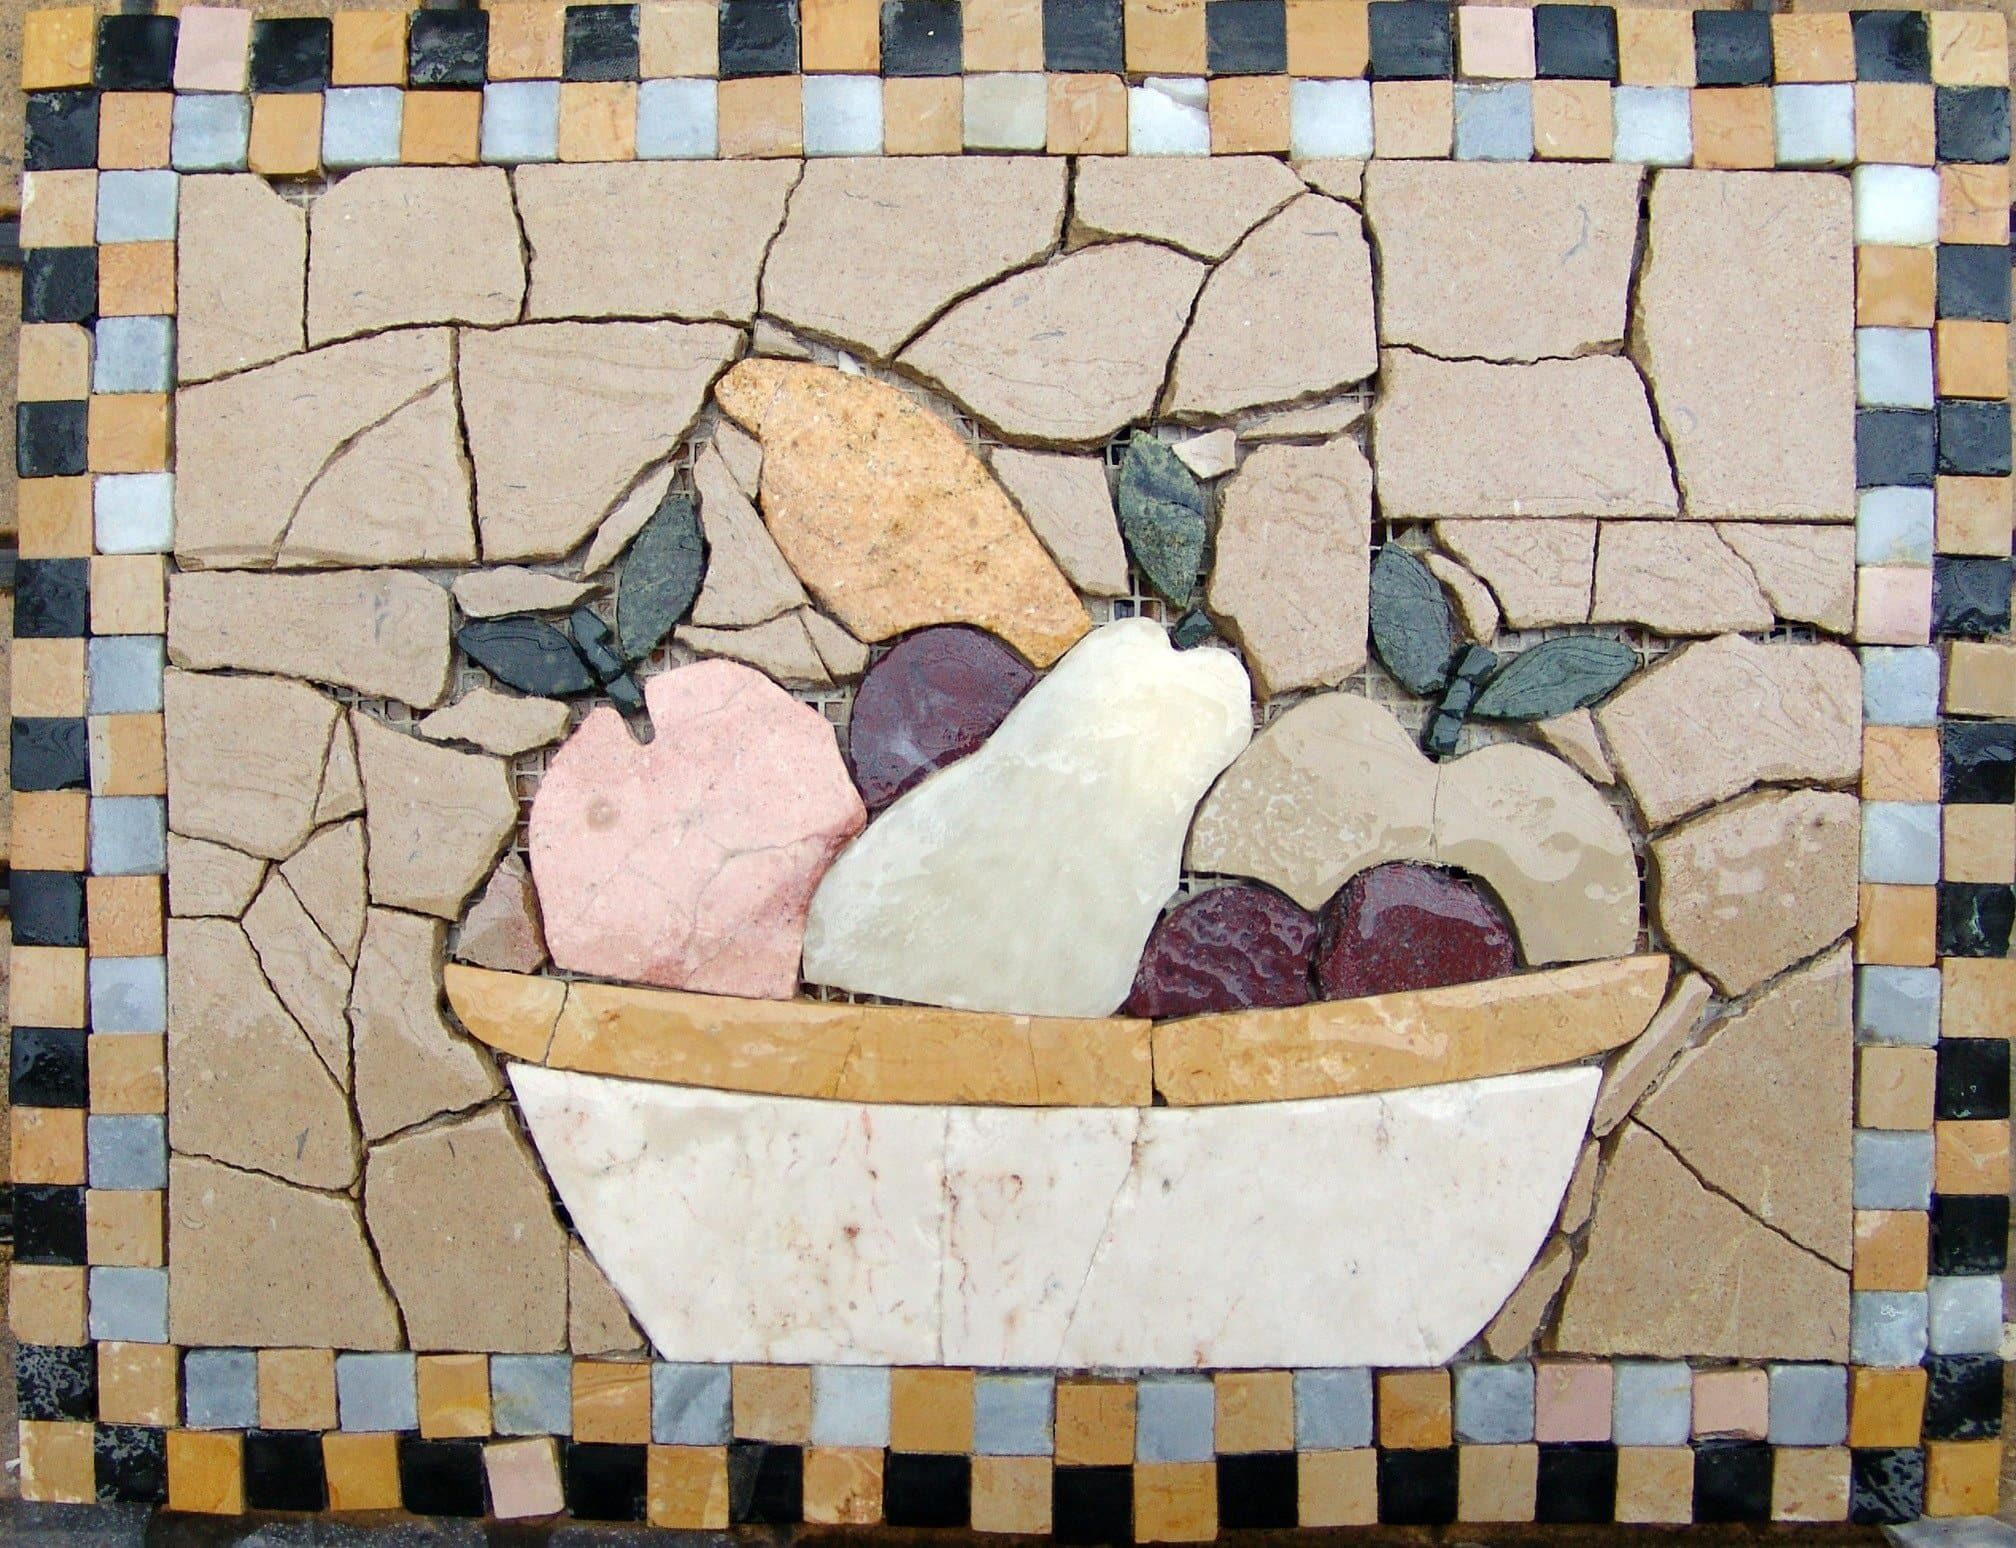 Kitchen Backsplash -Gourmet Fruits Mosaic